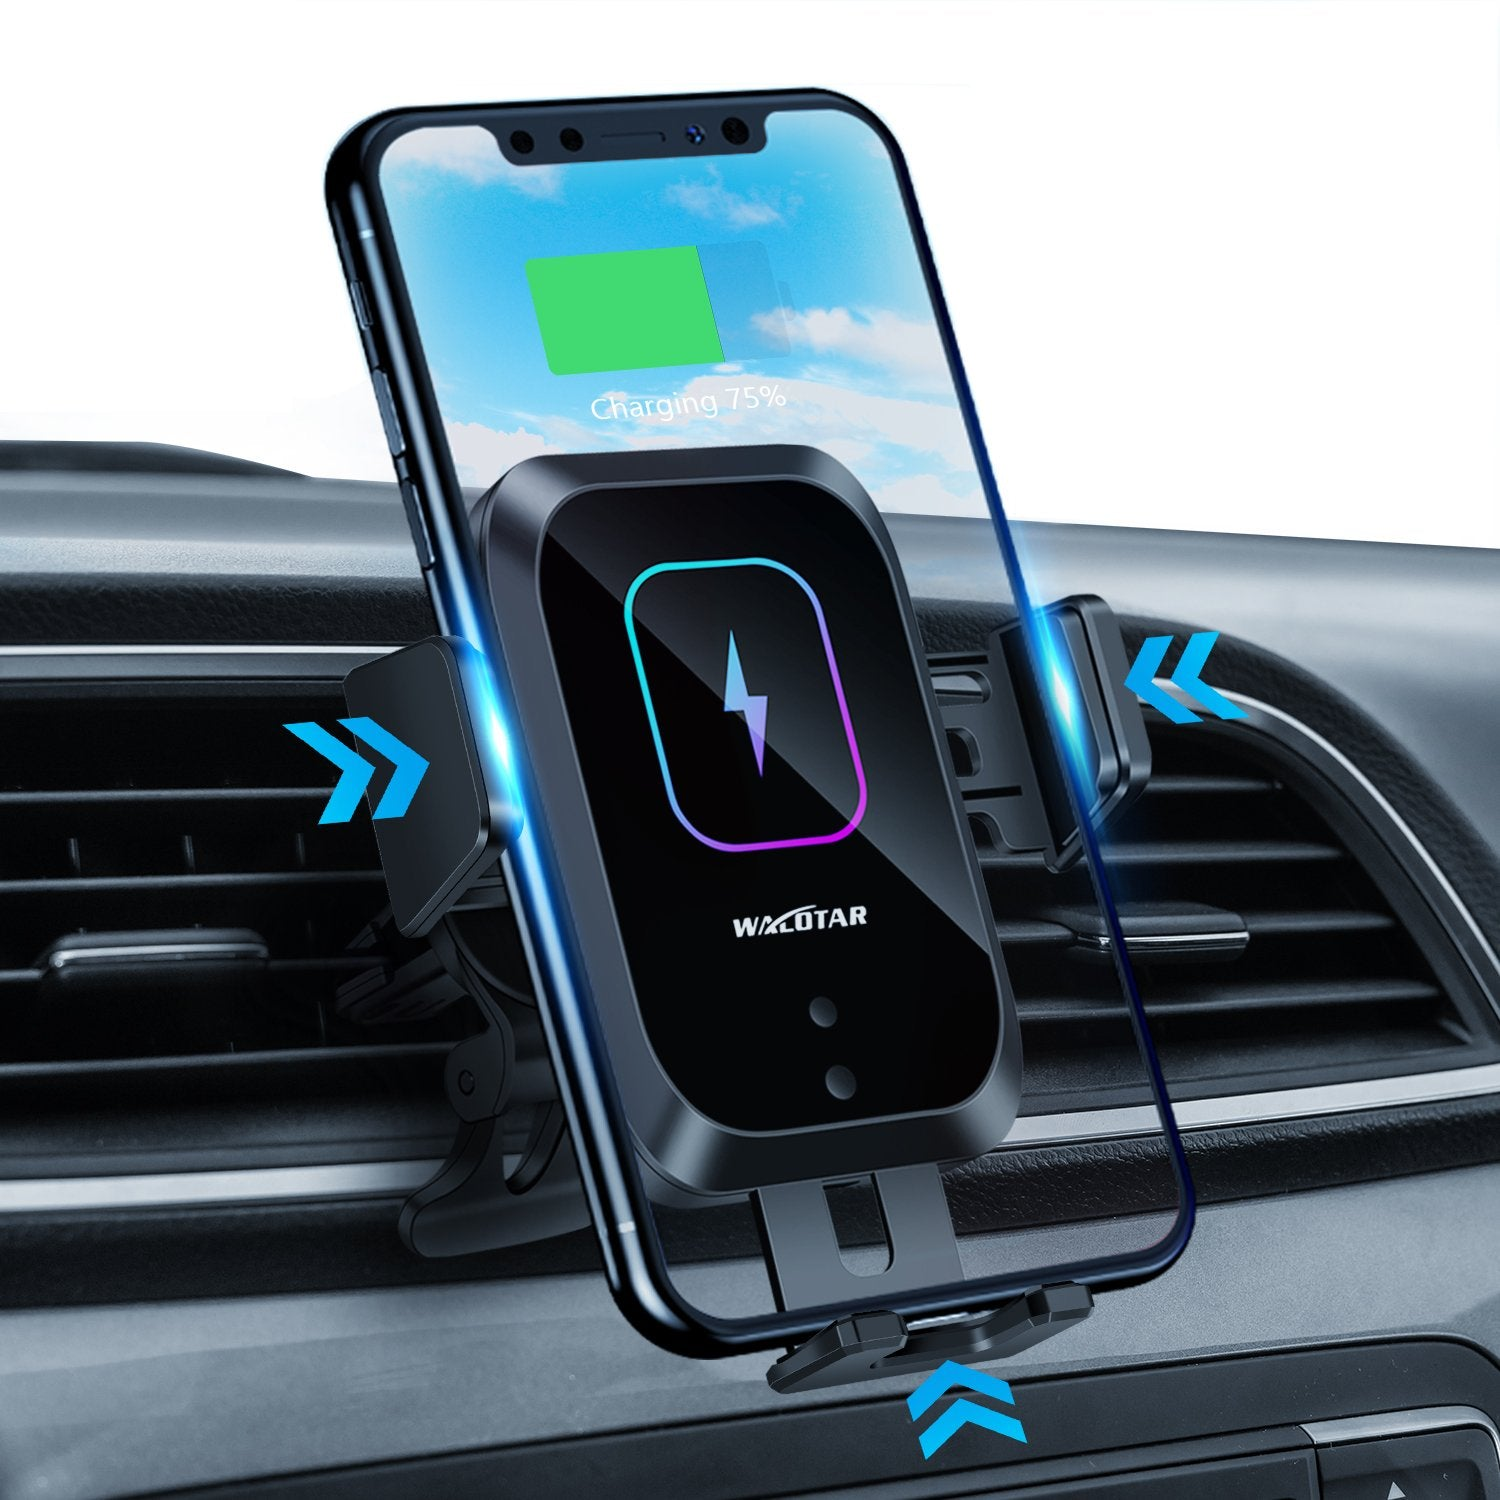 Walotar Wireless Car Charger Auto-Clamping Phone Mount,15W Qi Fast Charging Car Charger Air Vent Phone Holder Compatible with iPhone 12 Pro Max/11 Pro Max/Xs MAX/X/8,Samsung S20/S10/S10+/S9/S9+/S8